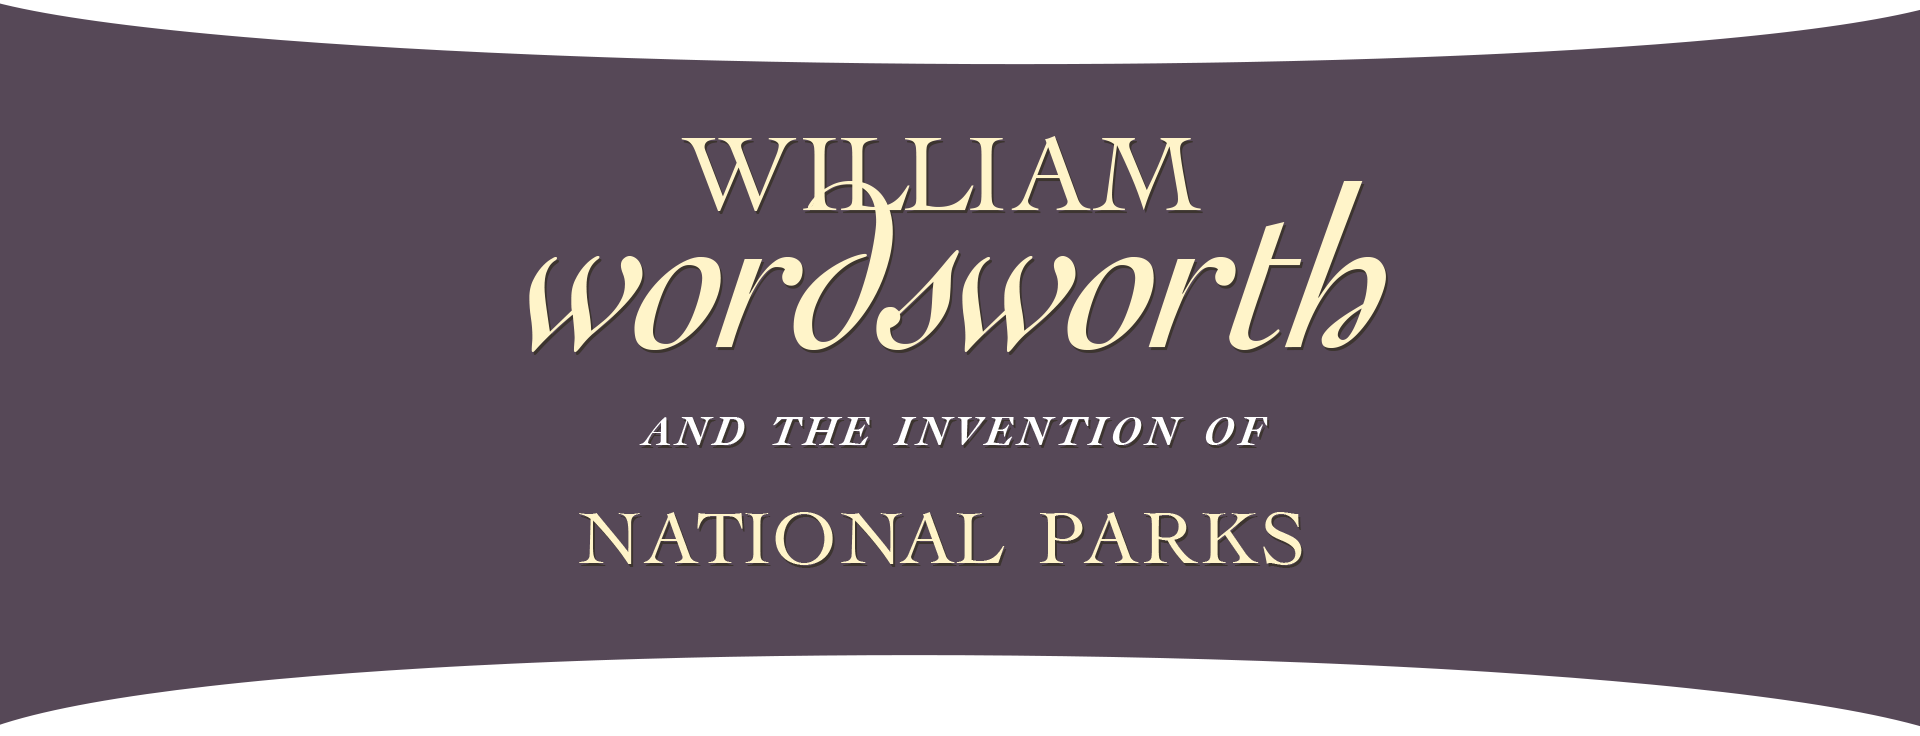 william wordsworth exhibit william wordsworth and the invention of national parks